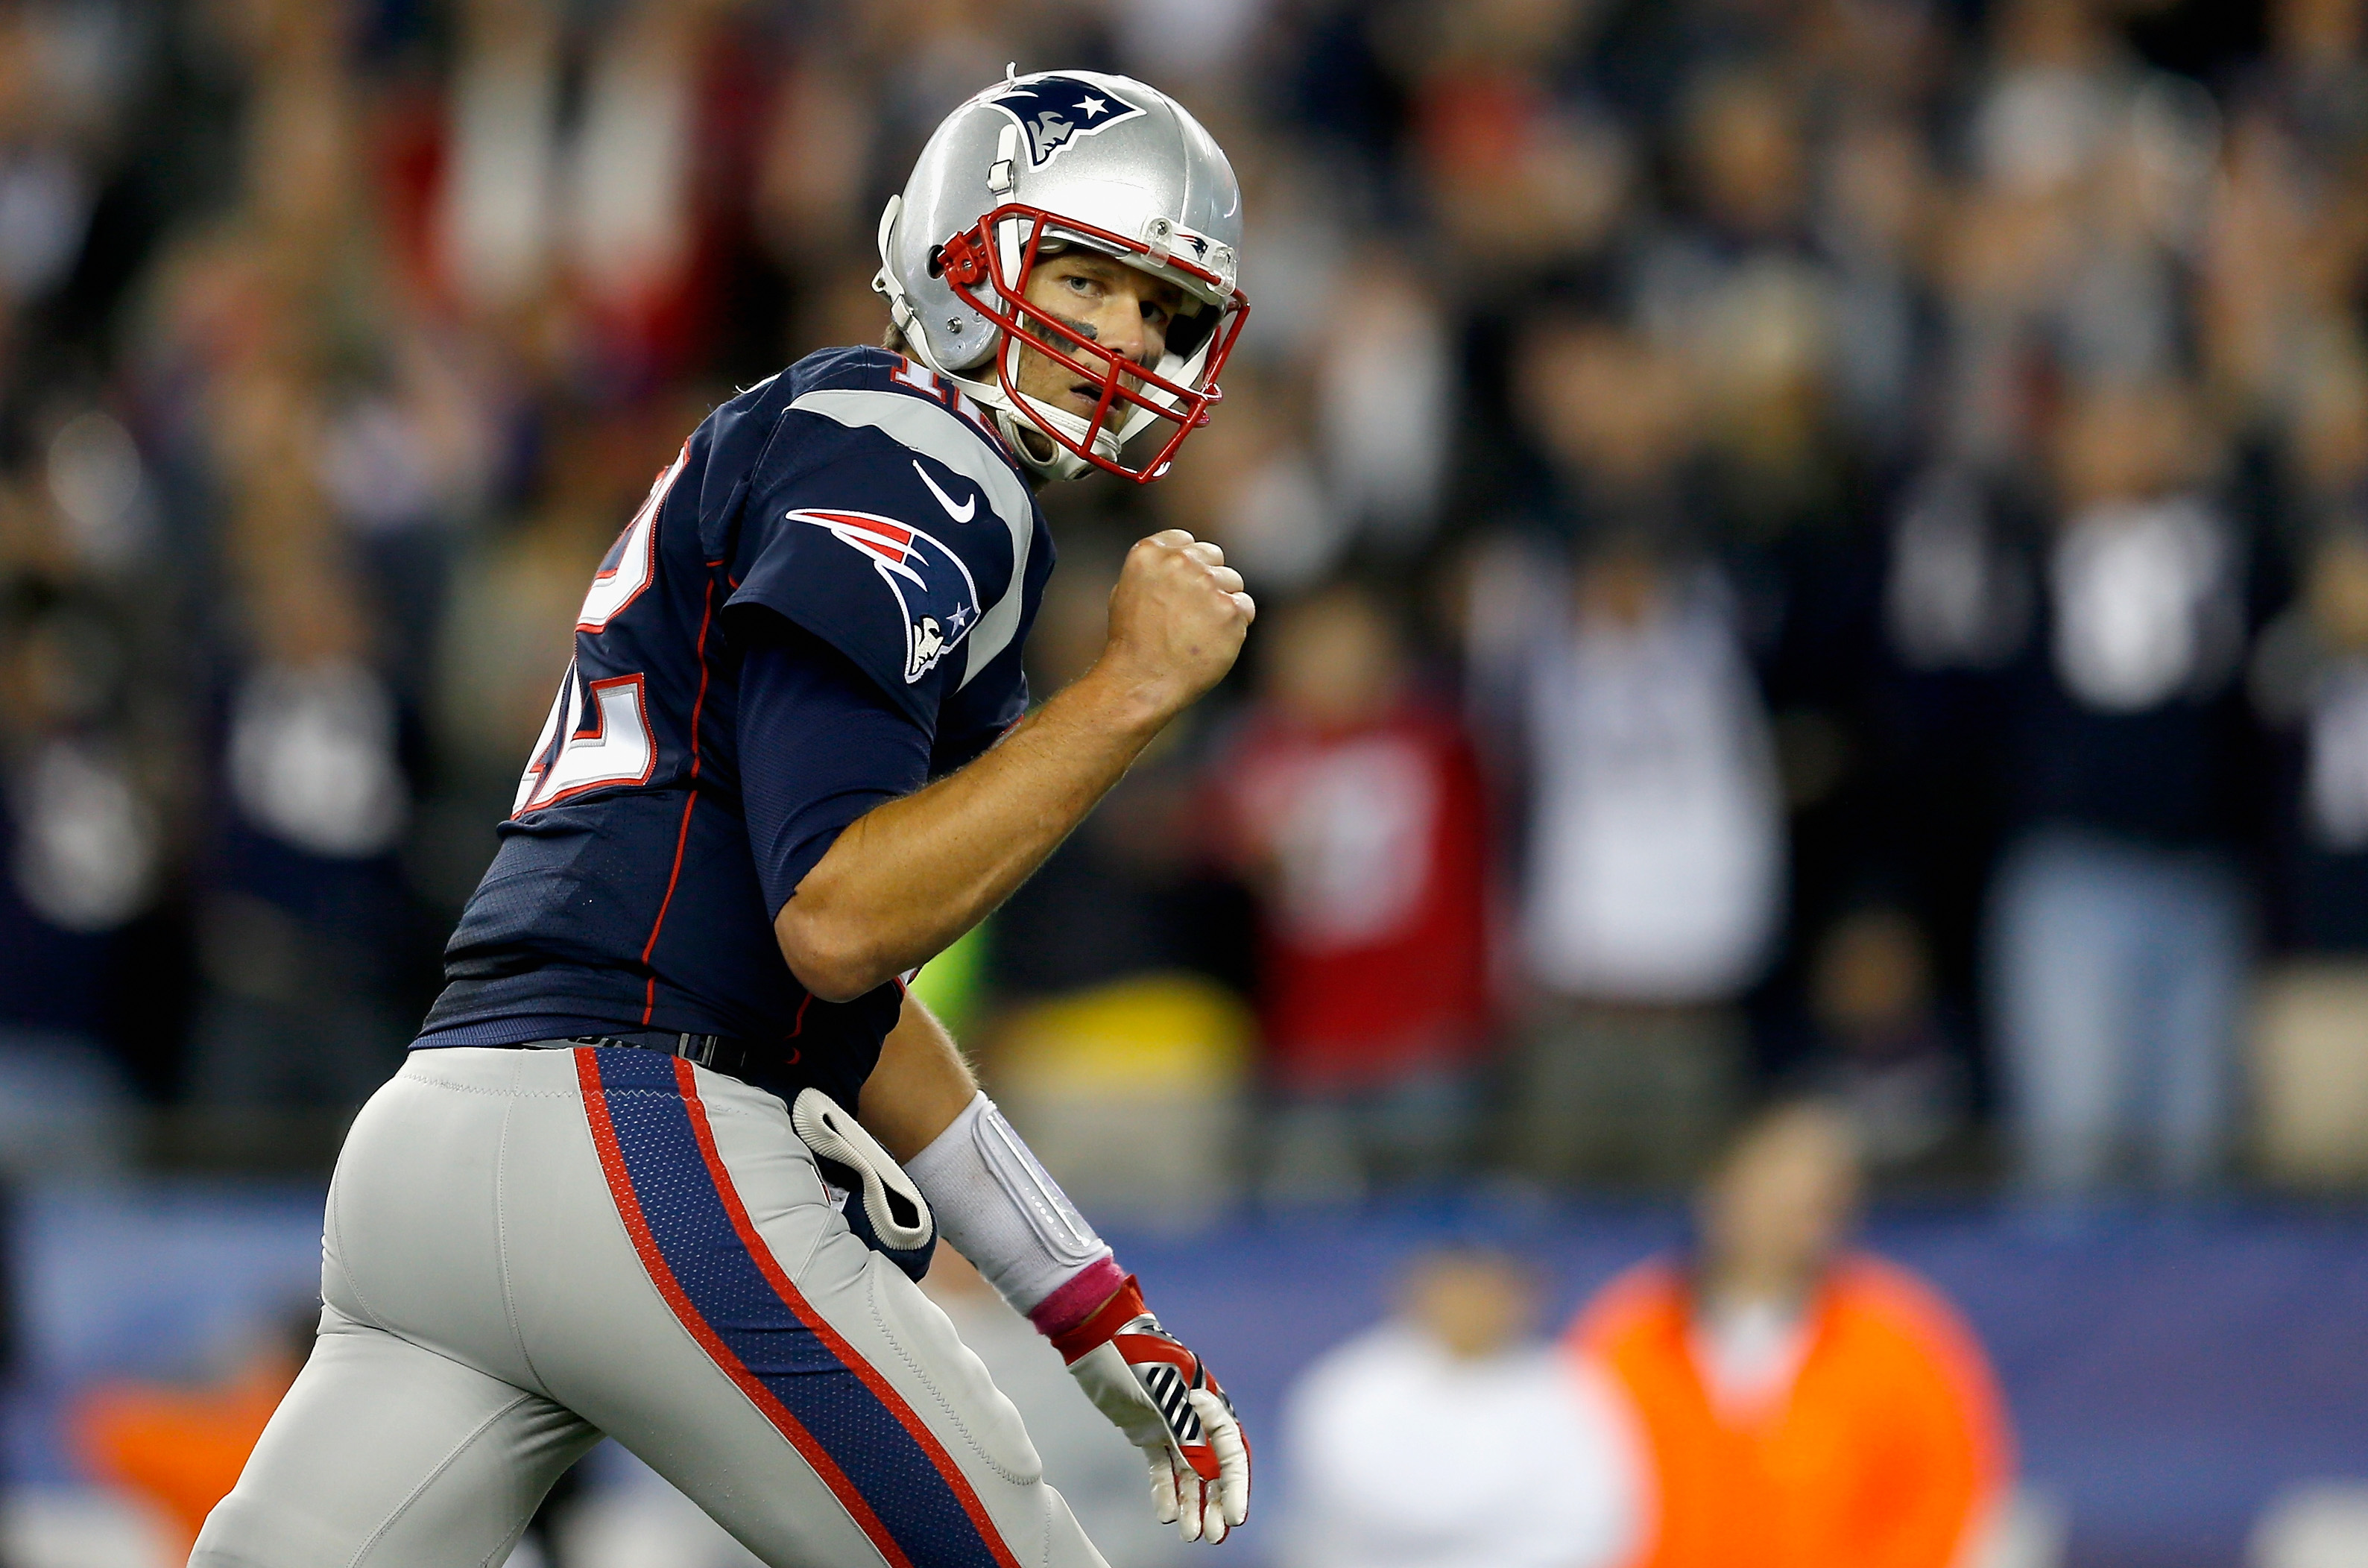 FOXBORO, MA - OCTOBER 05:  Tom Brady #12 of the New England Patriots reacts after throwing a touchdown pass during the third quarter against the Cincinnati Bengals at Gillette Stadium on October 5, 2014 in Foxboro, Massachusetts.  (Photo by Jim Rogash/Getty Images)